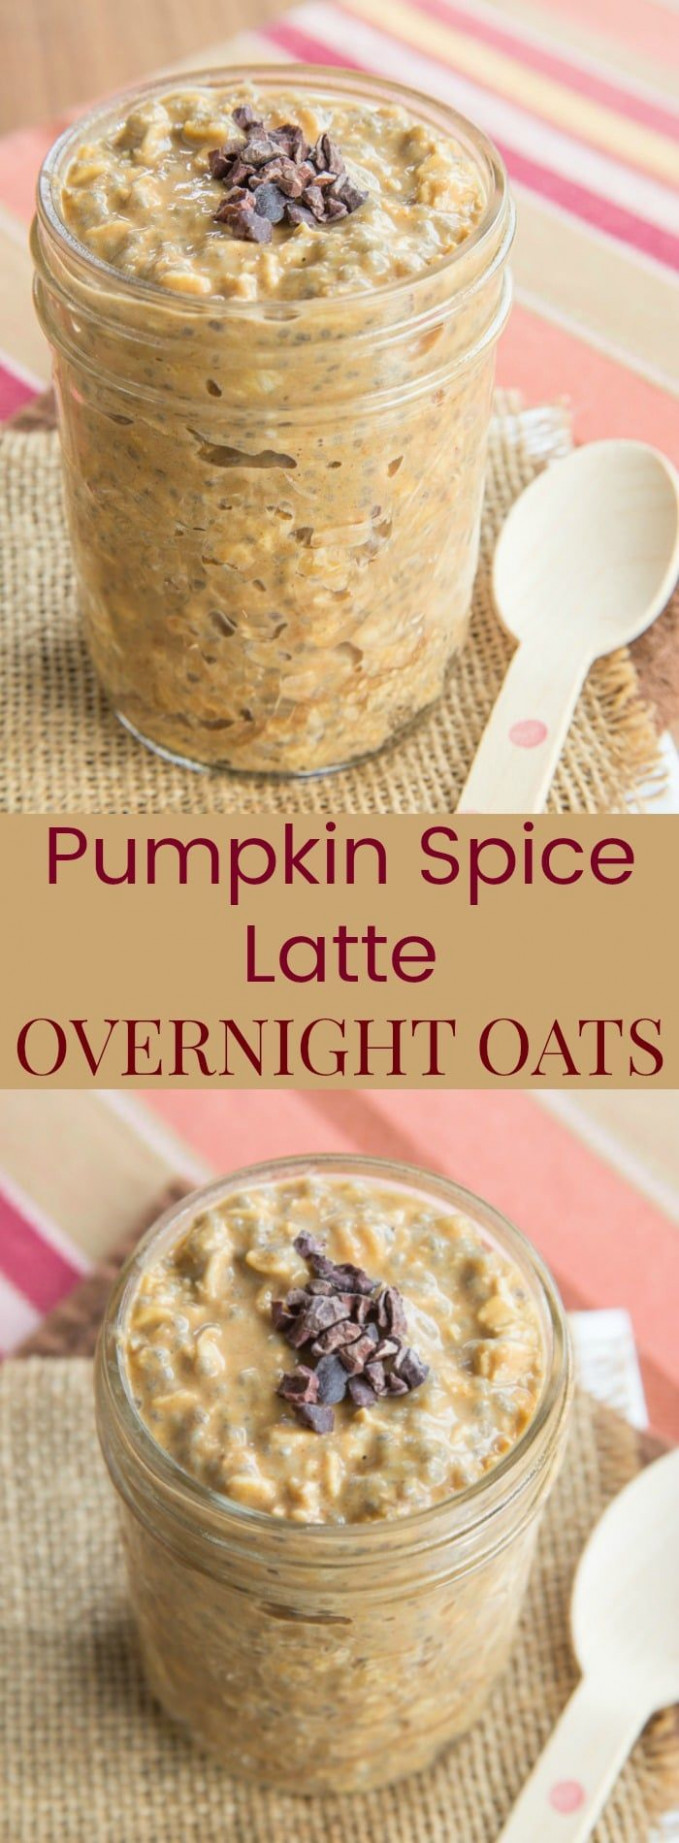 Pumpkin Spice Latte Overnight Oats | Recipe | Cookies ..